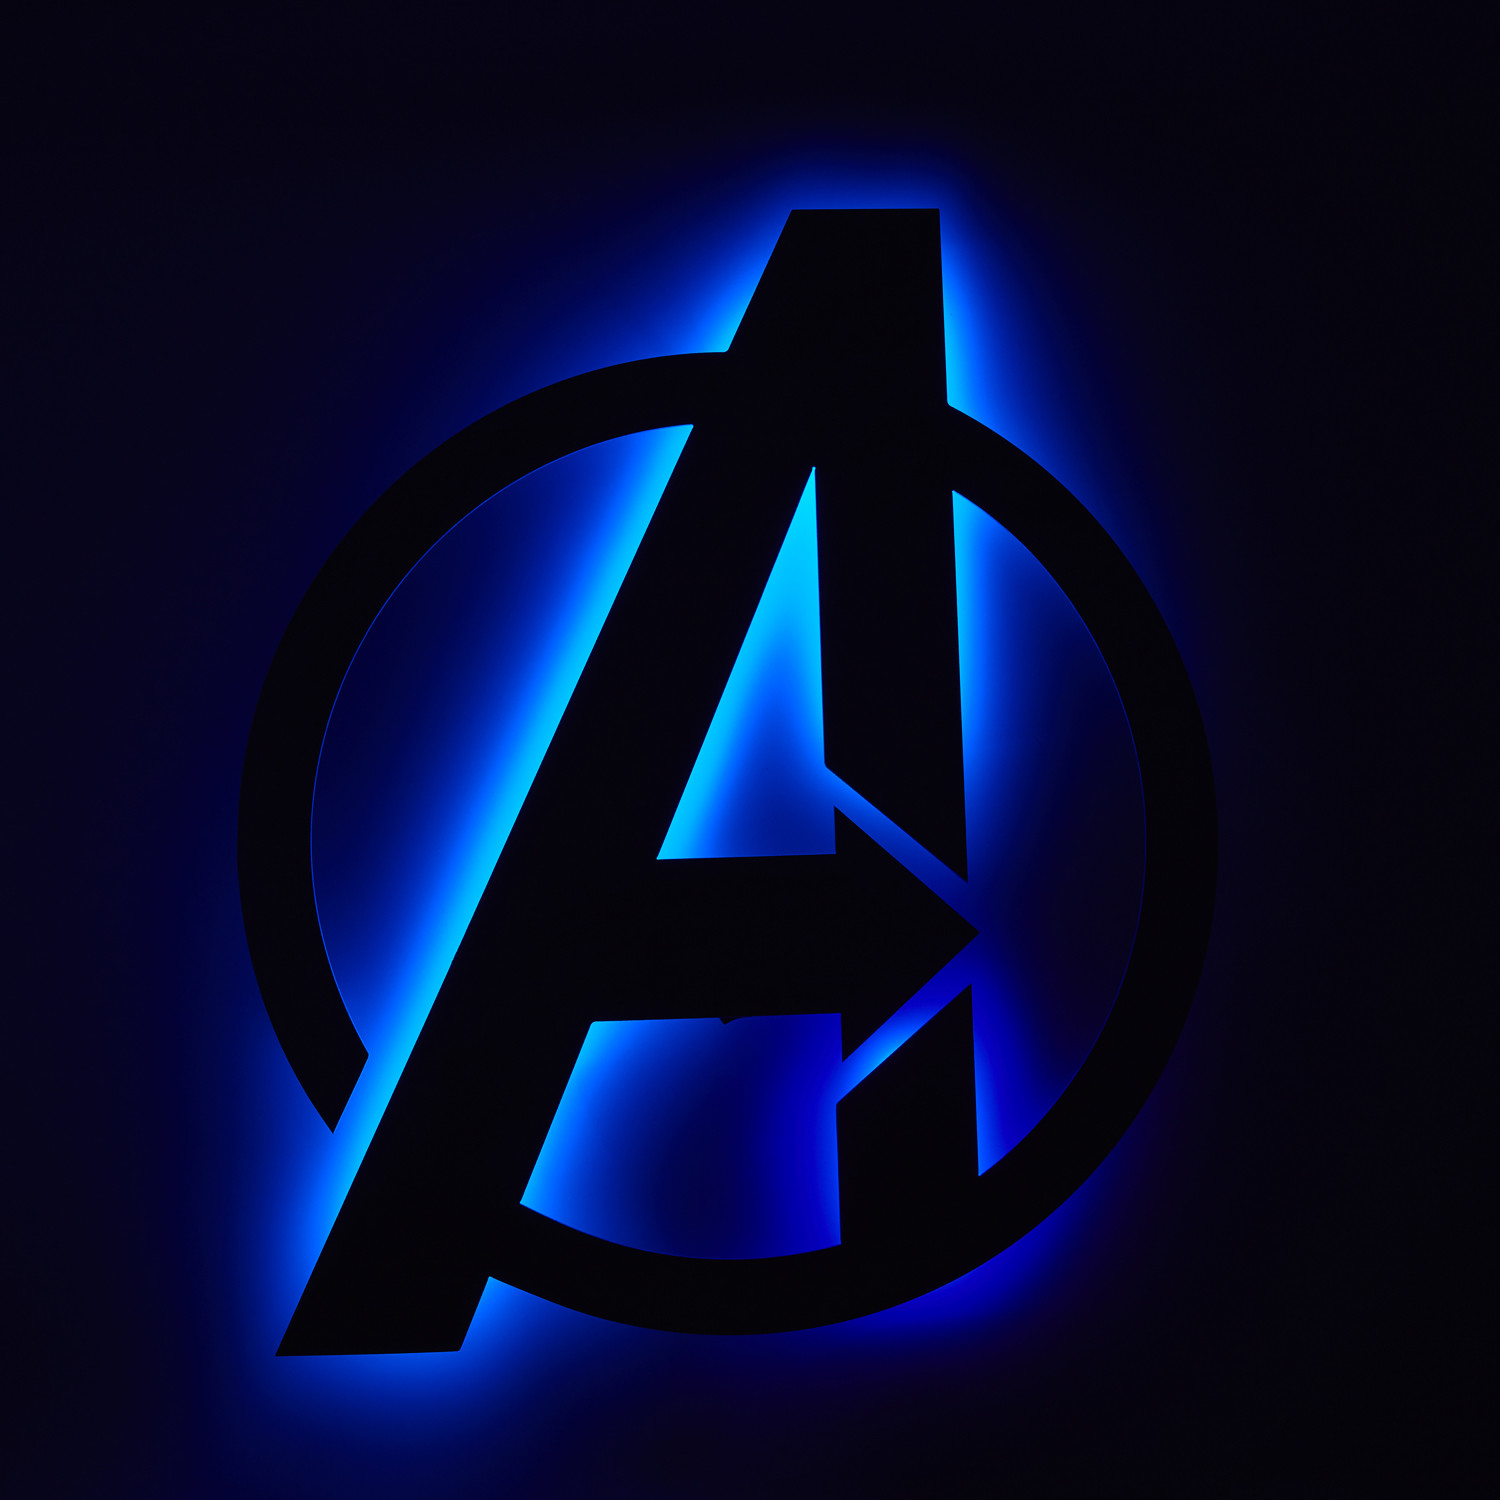 I already used a picture of Thanos in the end credits scene, so here's a backlit Avengers logo instead.